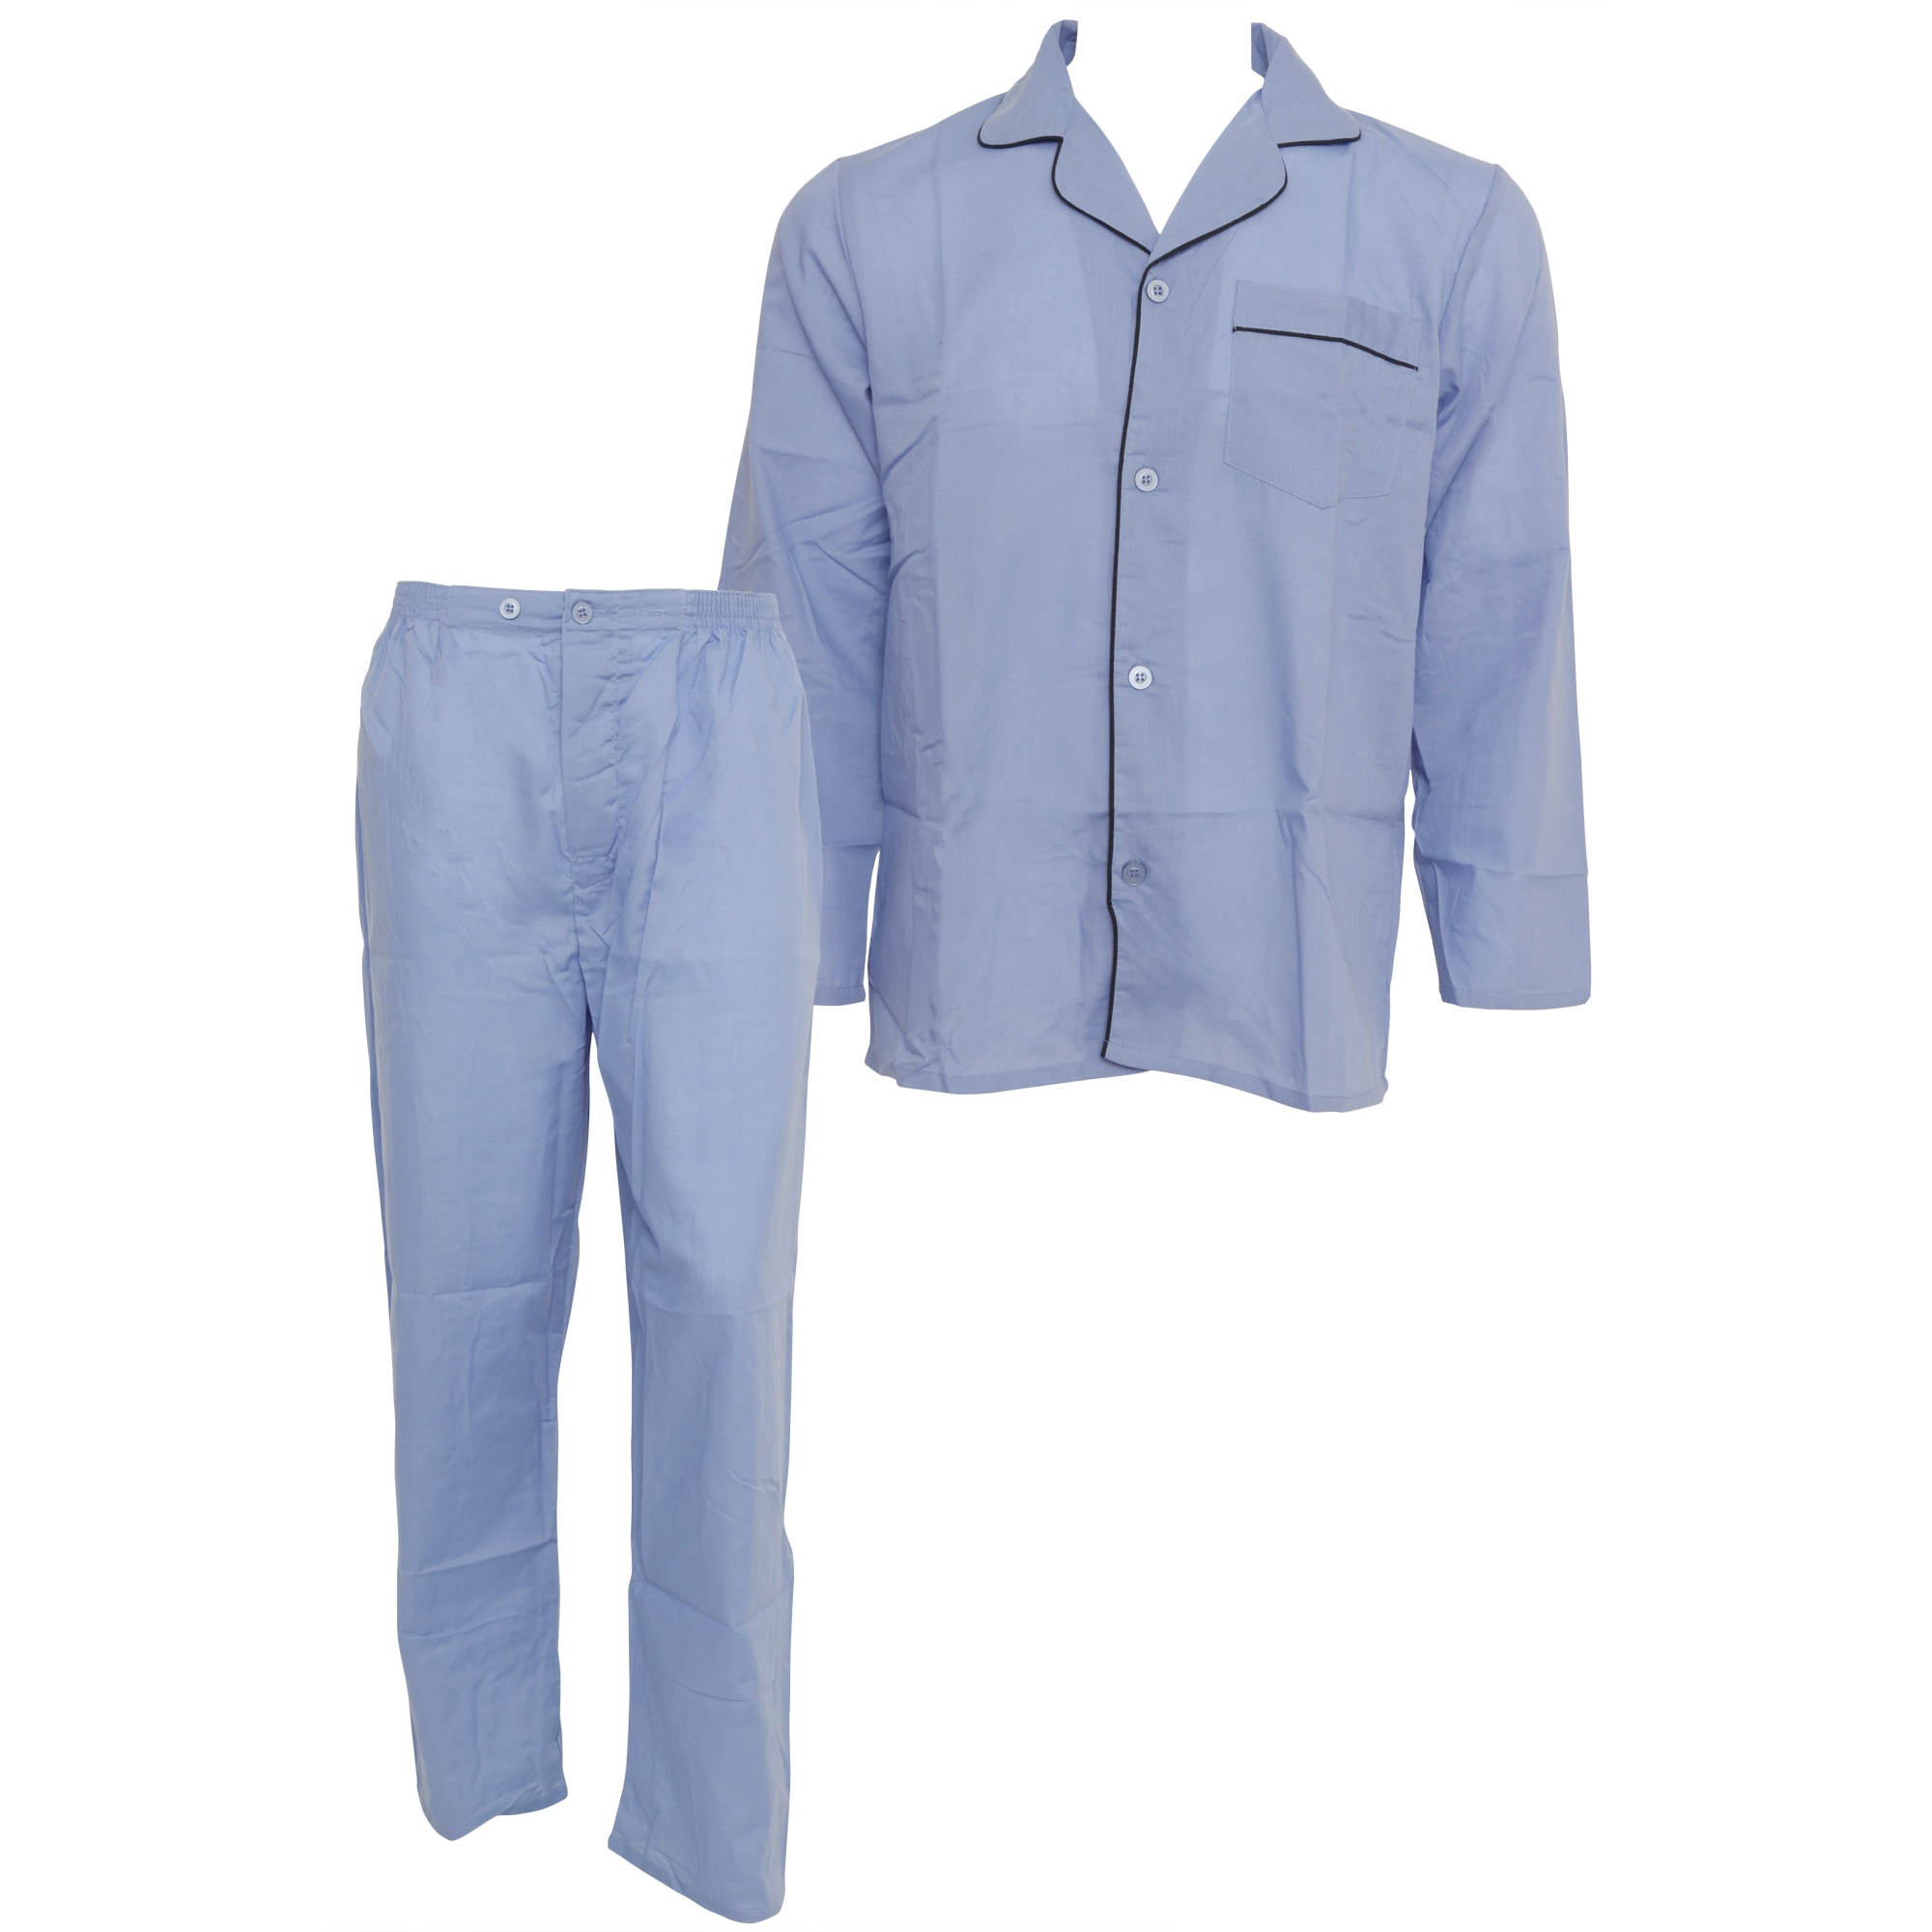 Product Features TOP - This soft pajama set features a full button down top that is easy.